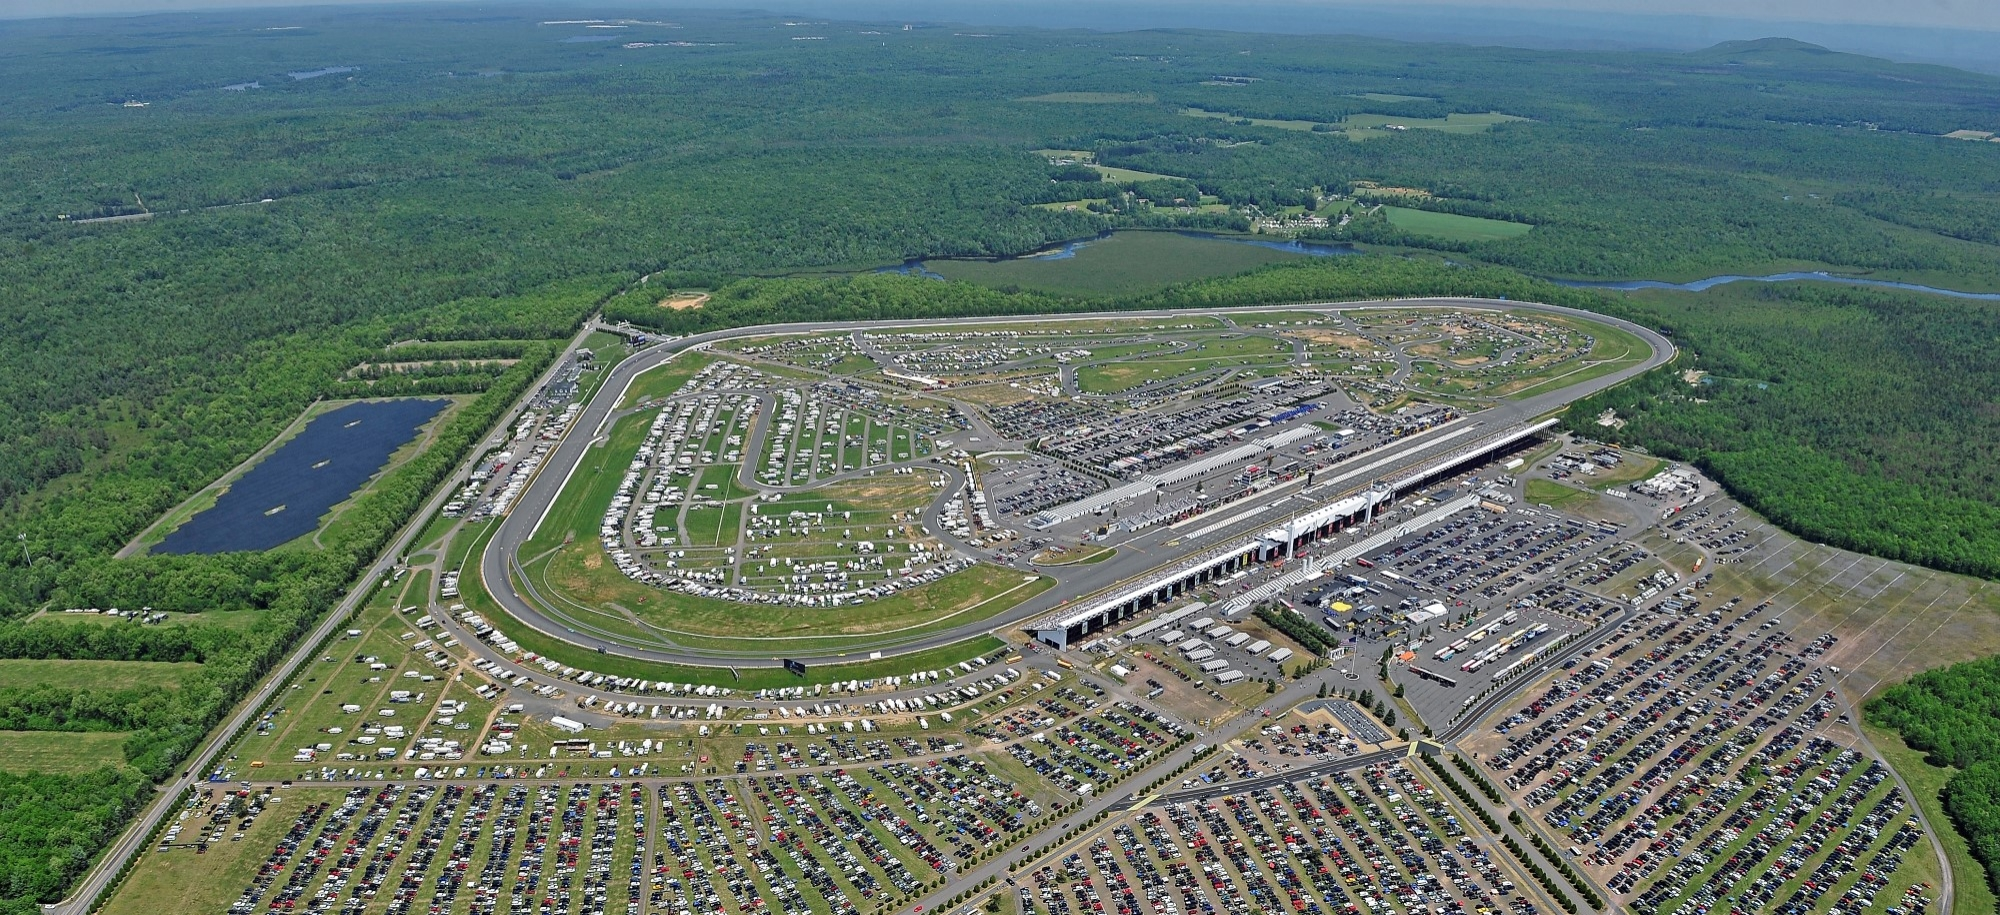 Pocono racetrack casino argosy alton belle casino